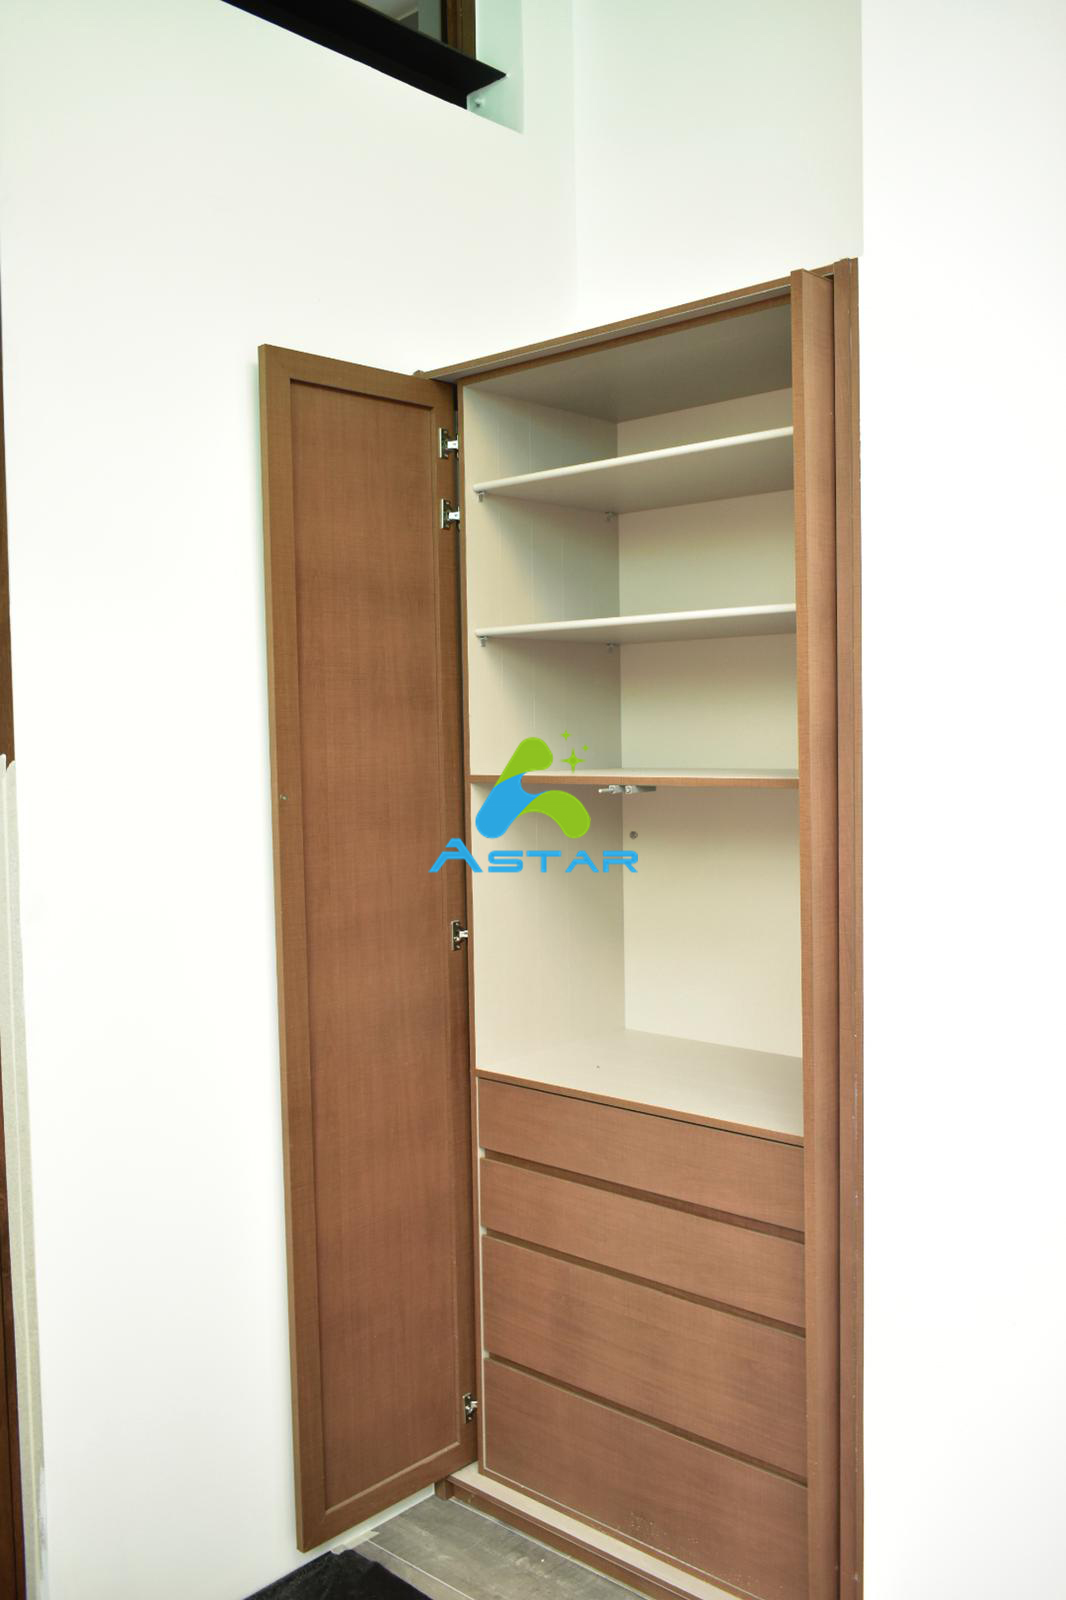 astar furnishing complete projects aluminium kitchen cabinet vanity cabinet wardrobe gardenia road 16